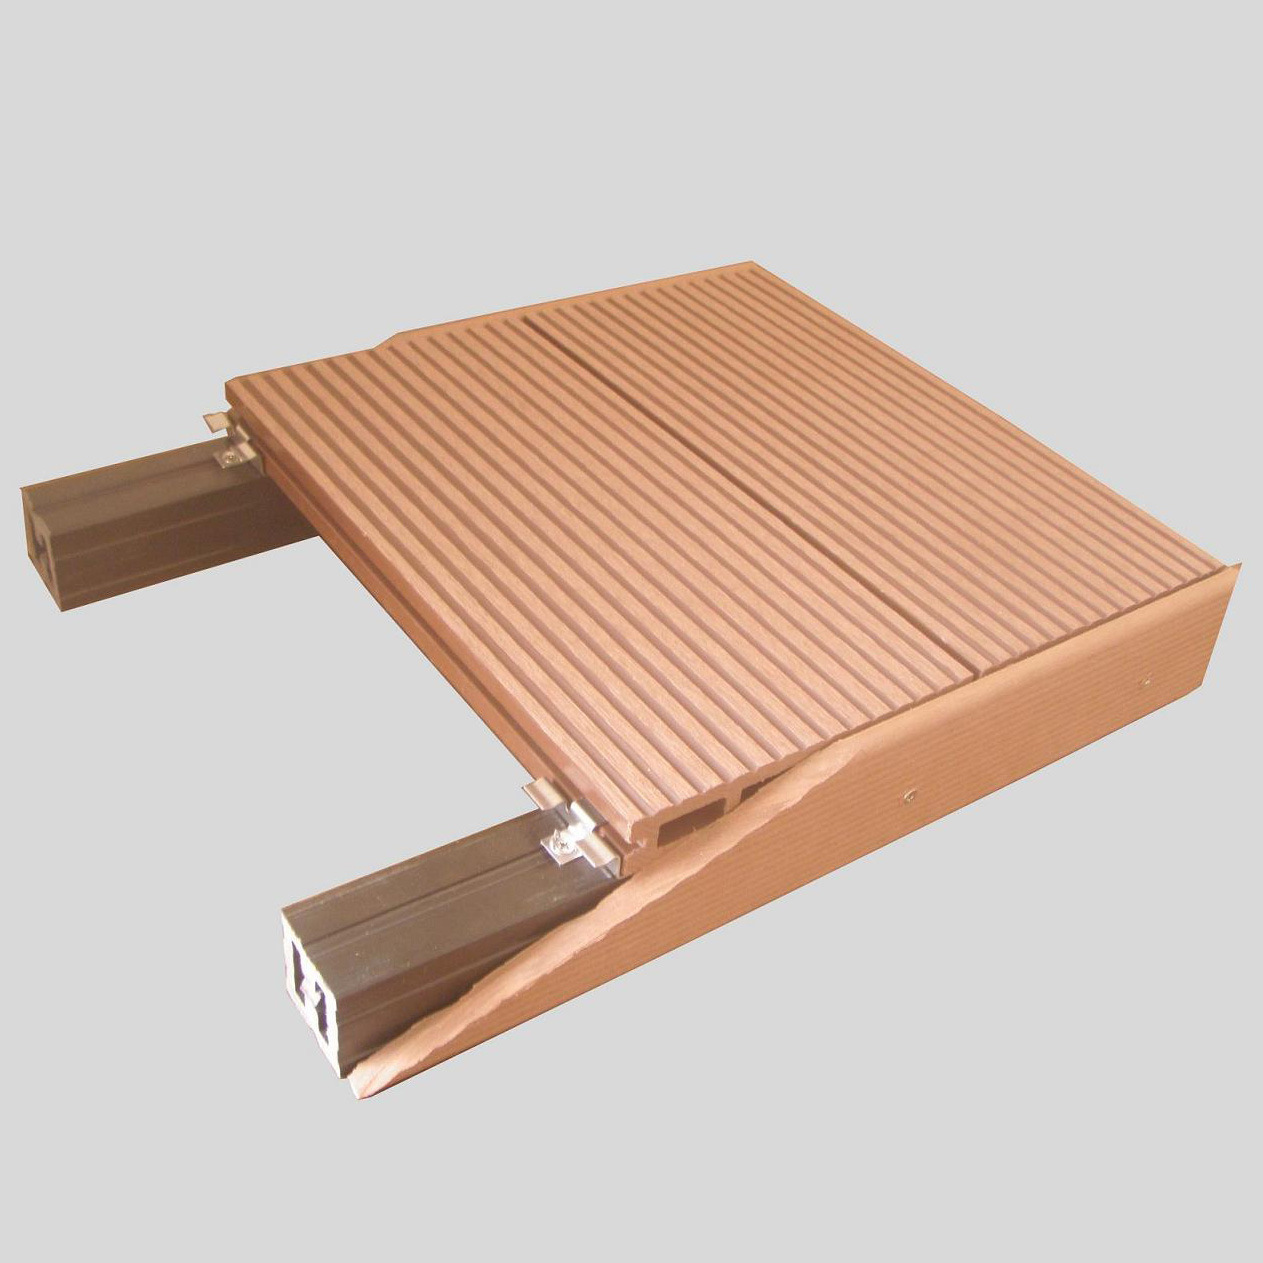 Wood Plastic Composite Decking : China outdoor waterproof wood plastic composite decking